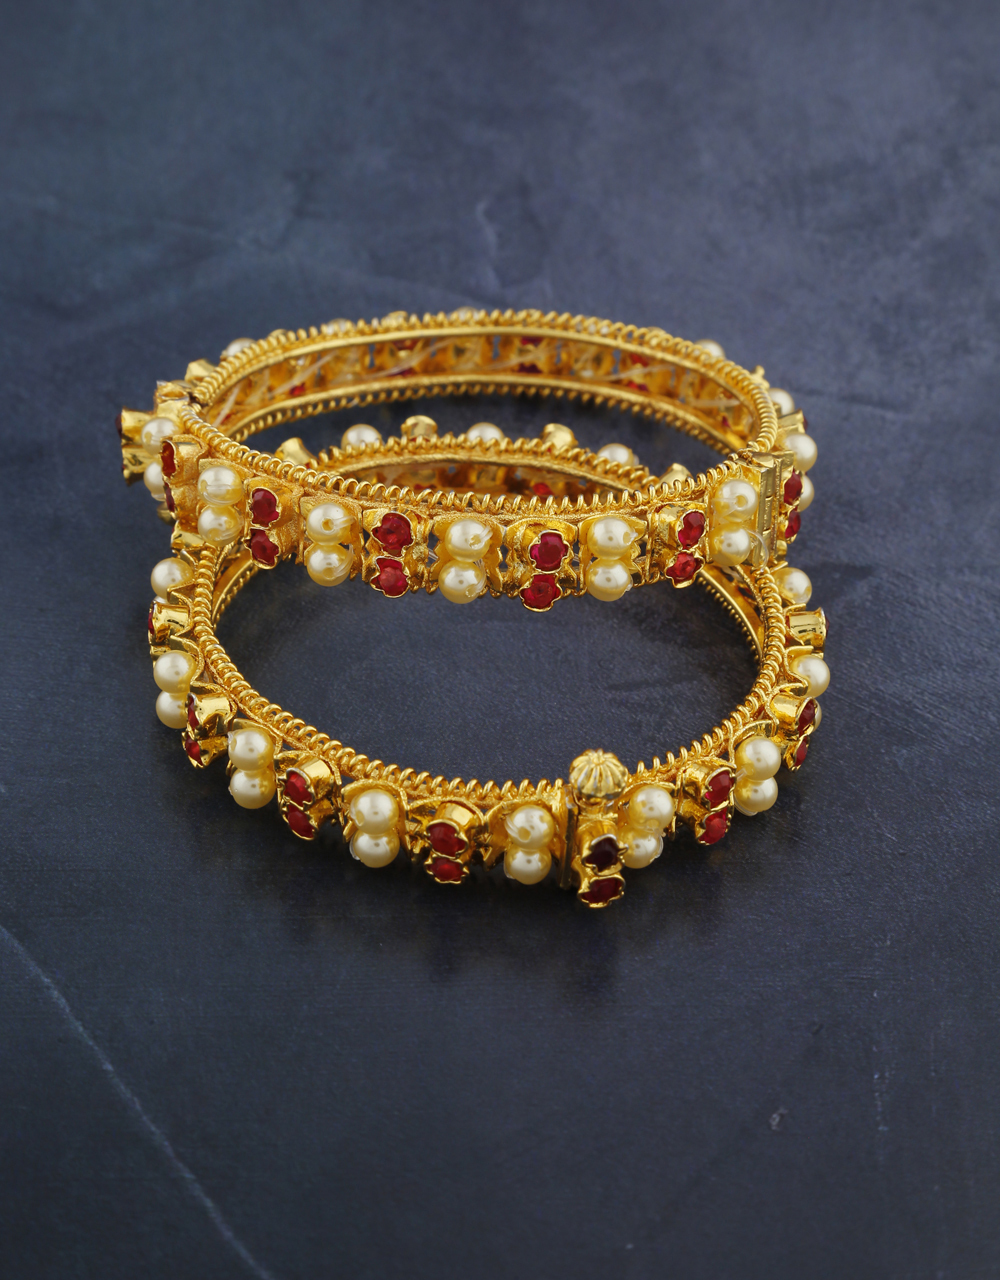 Amazing Rani Colour Stone Studded Golden Finish Traditional Bangles For Women.